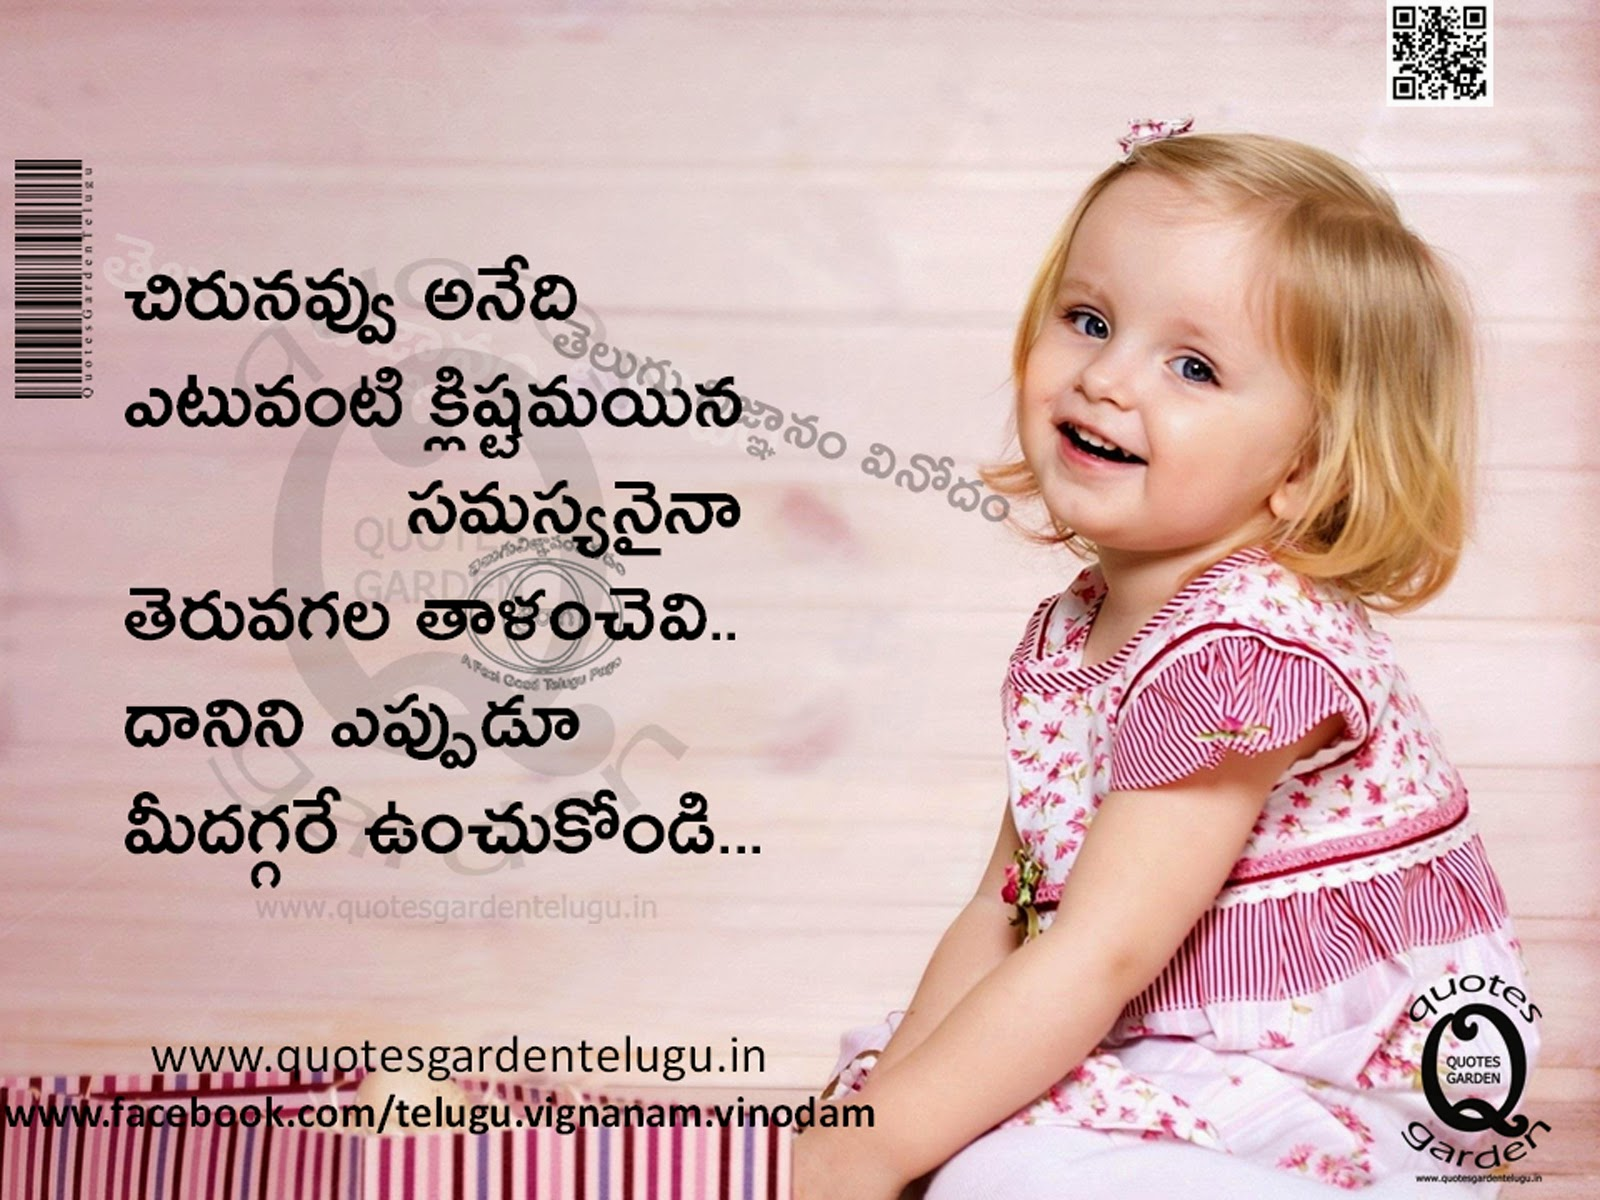 Good morning quotes with Smile - inspirational Life Quotes with beautiful awesome images in telugu